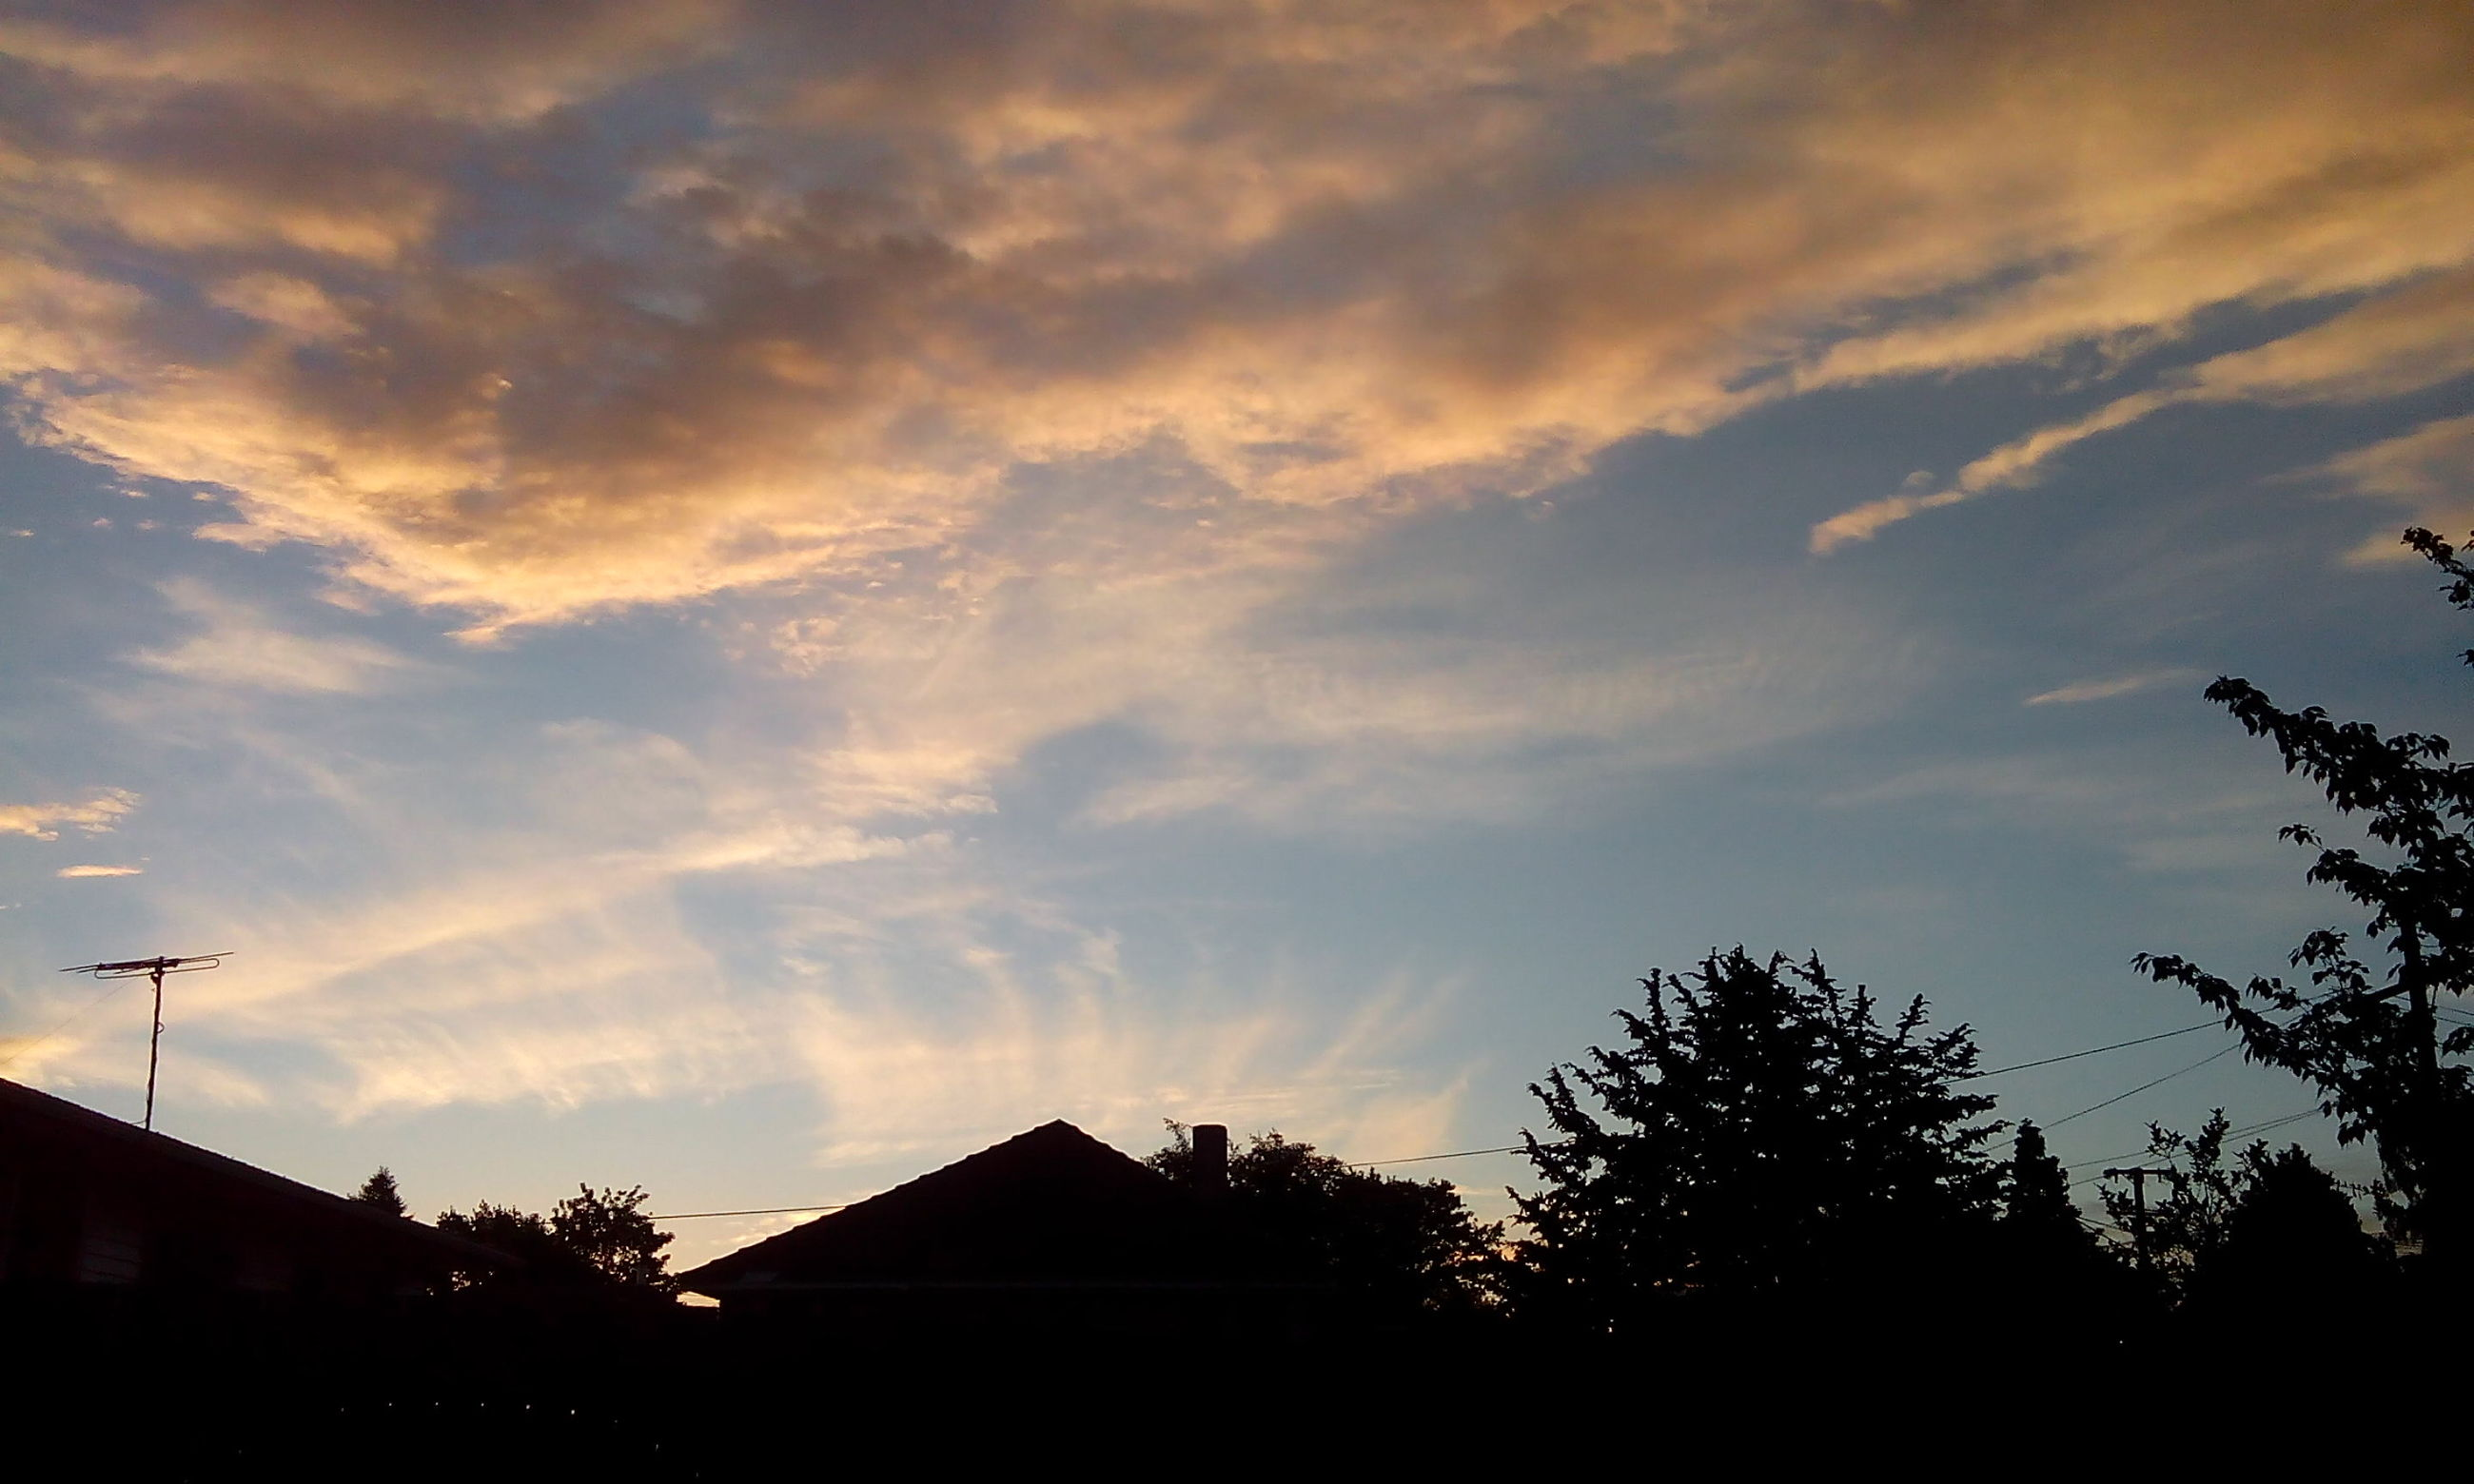 building exterior, architecture, built structure, low angle view, silhouette, sky, tree, sunset, house, cloud - sky, residential structure, high section, residential building, building, cloud, nature, outdoors, dusk, cloudy, no people